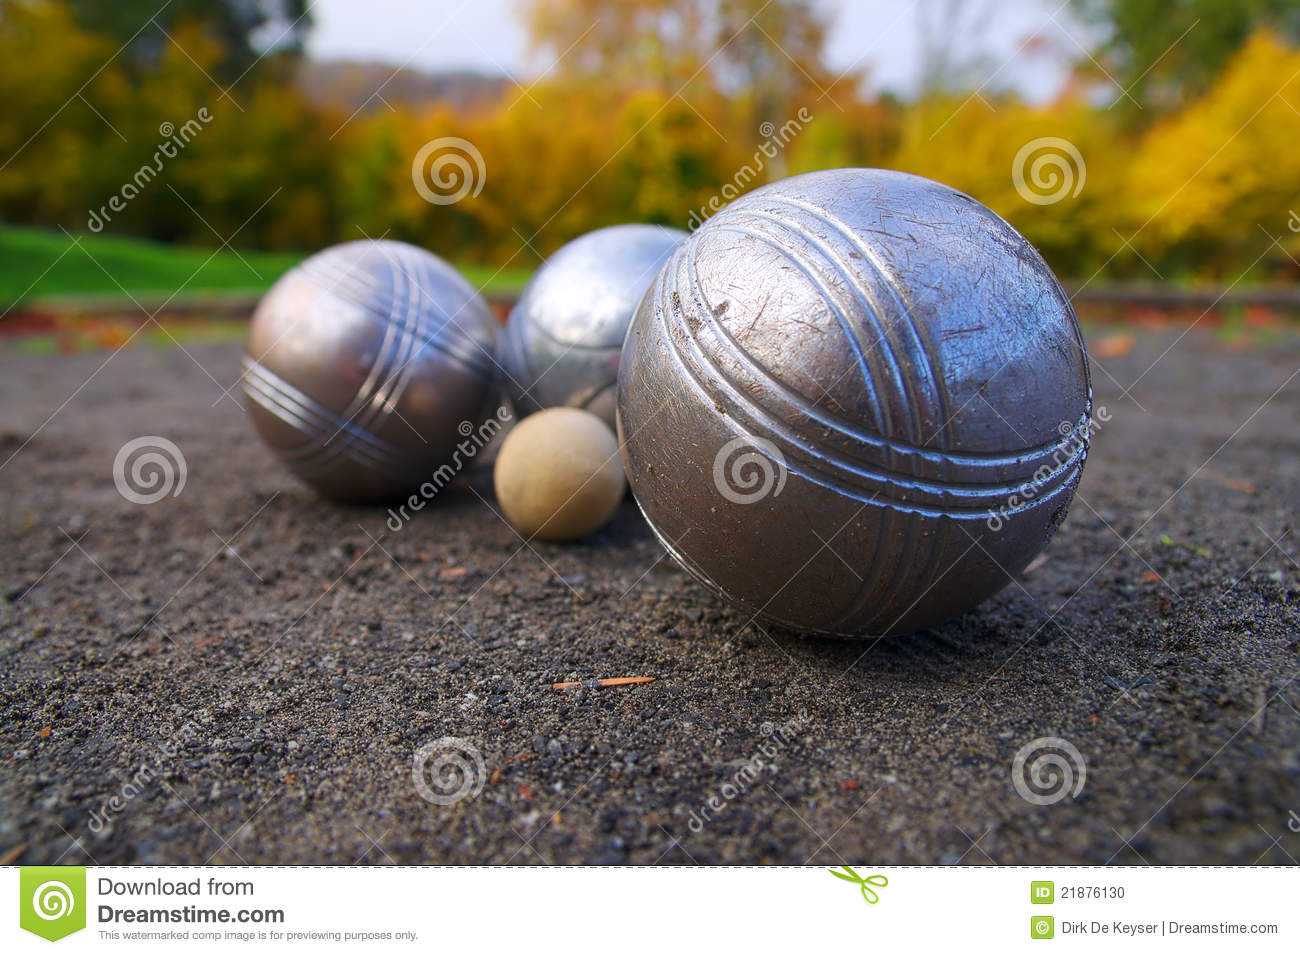 petanque jeu de boules france sports game stock photo. Black Bedroom Furniture Sets. Home Design Ideas